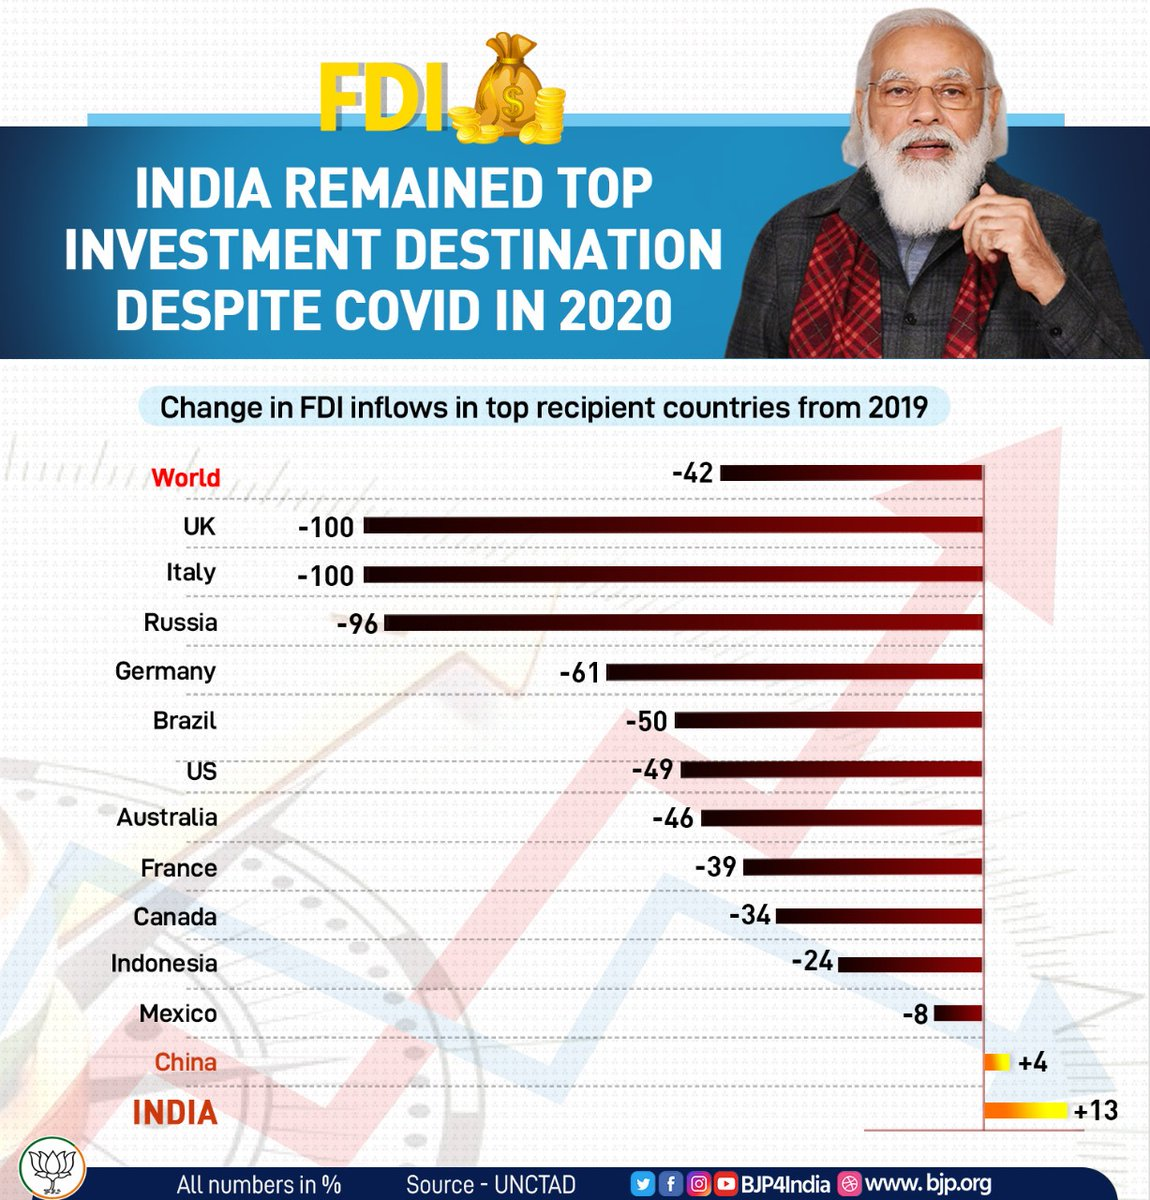 COVID fails to stop India's upsurge.   FDI in India grew in double digits in 2020 when most developed countries fared in negative figures amongst the top recipients in 2019.